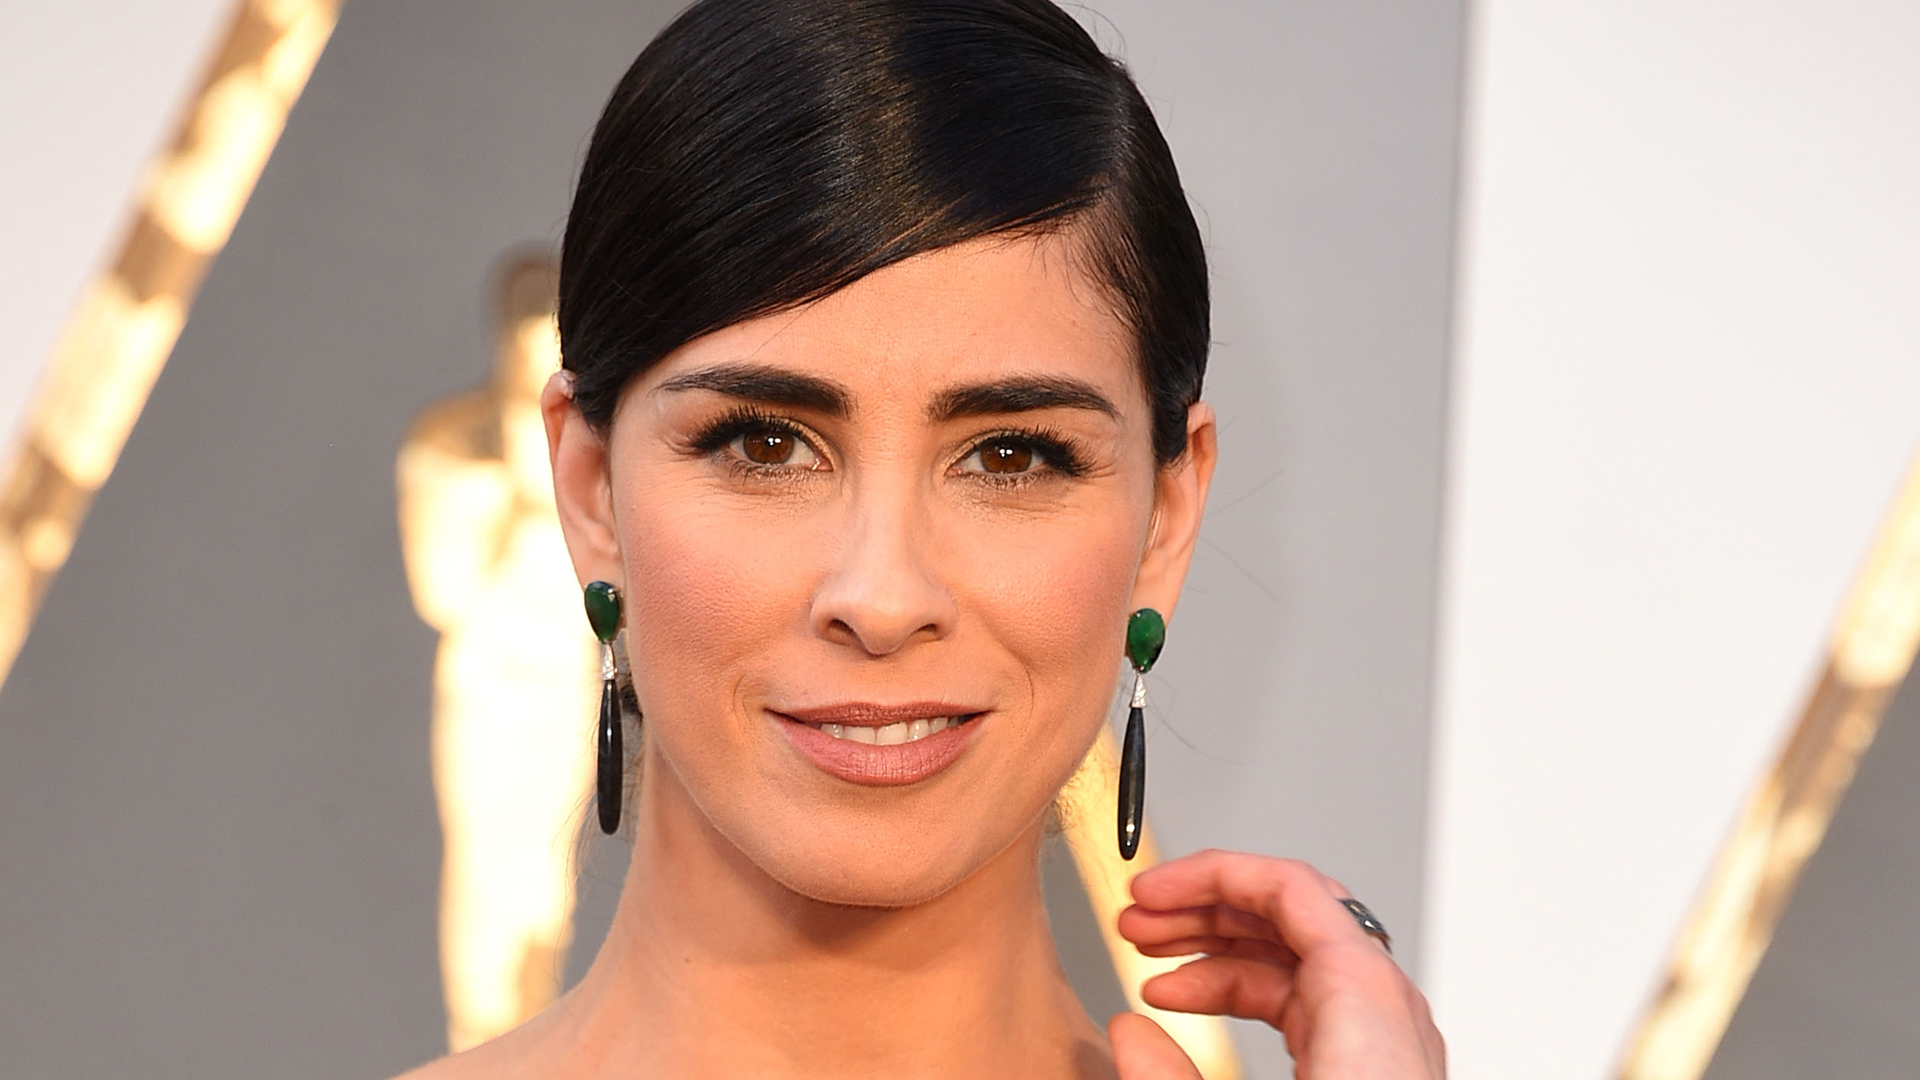 Pictures Of Sarah Silverman